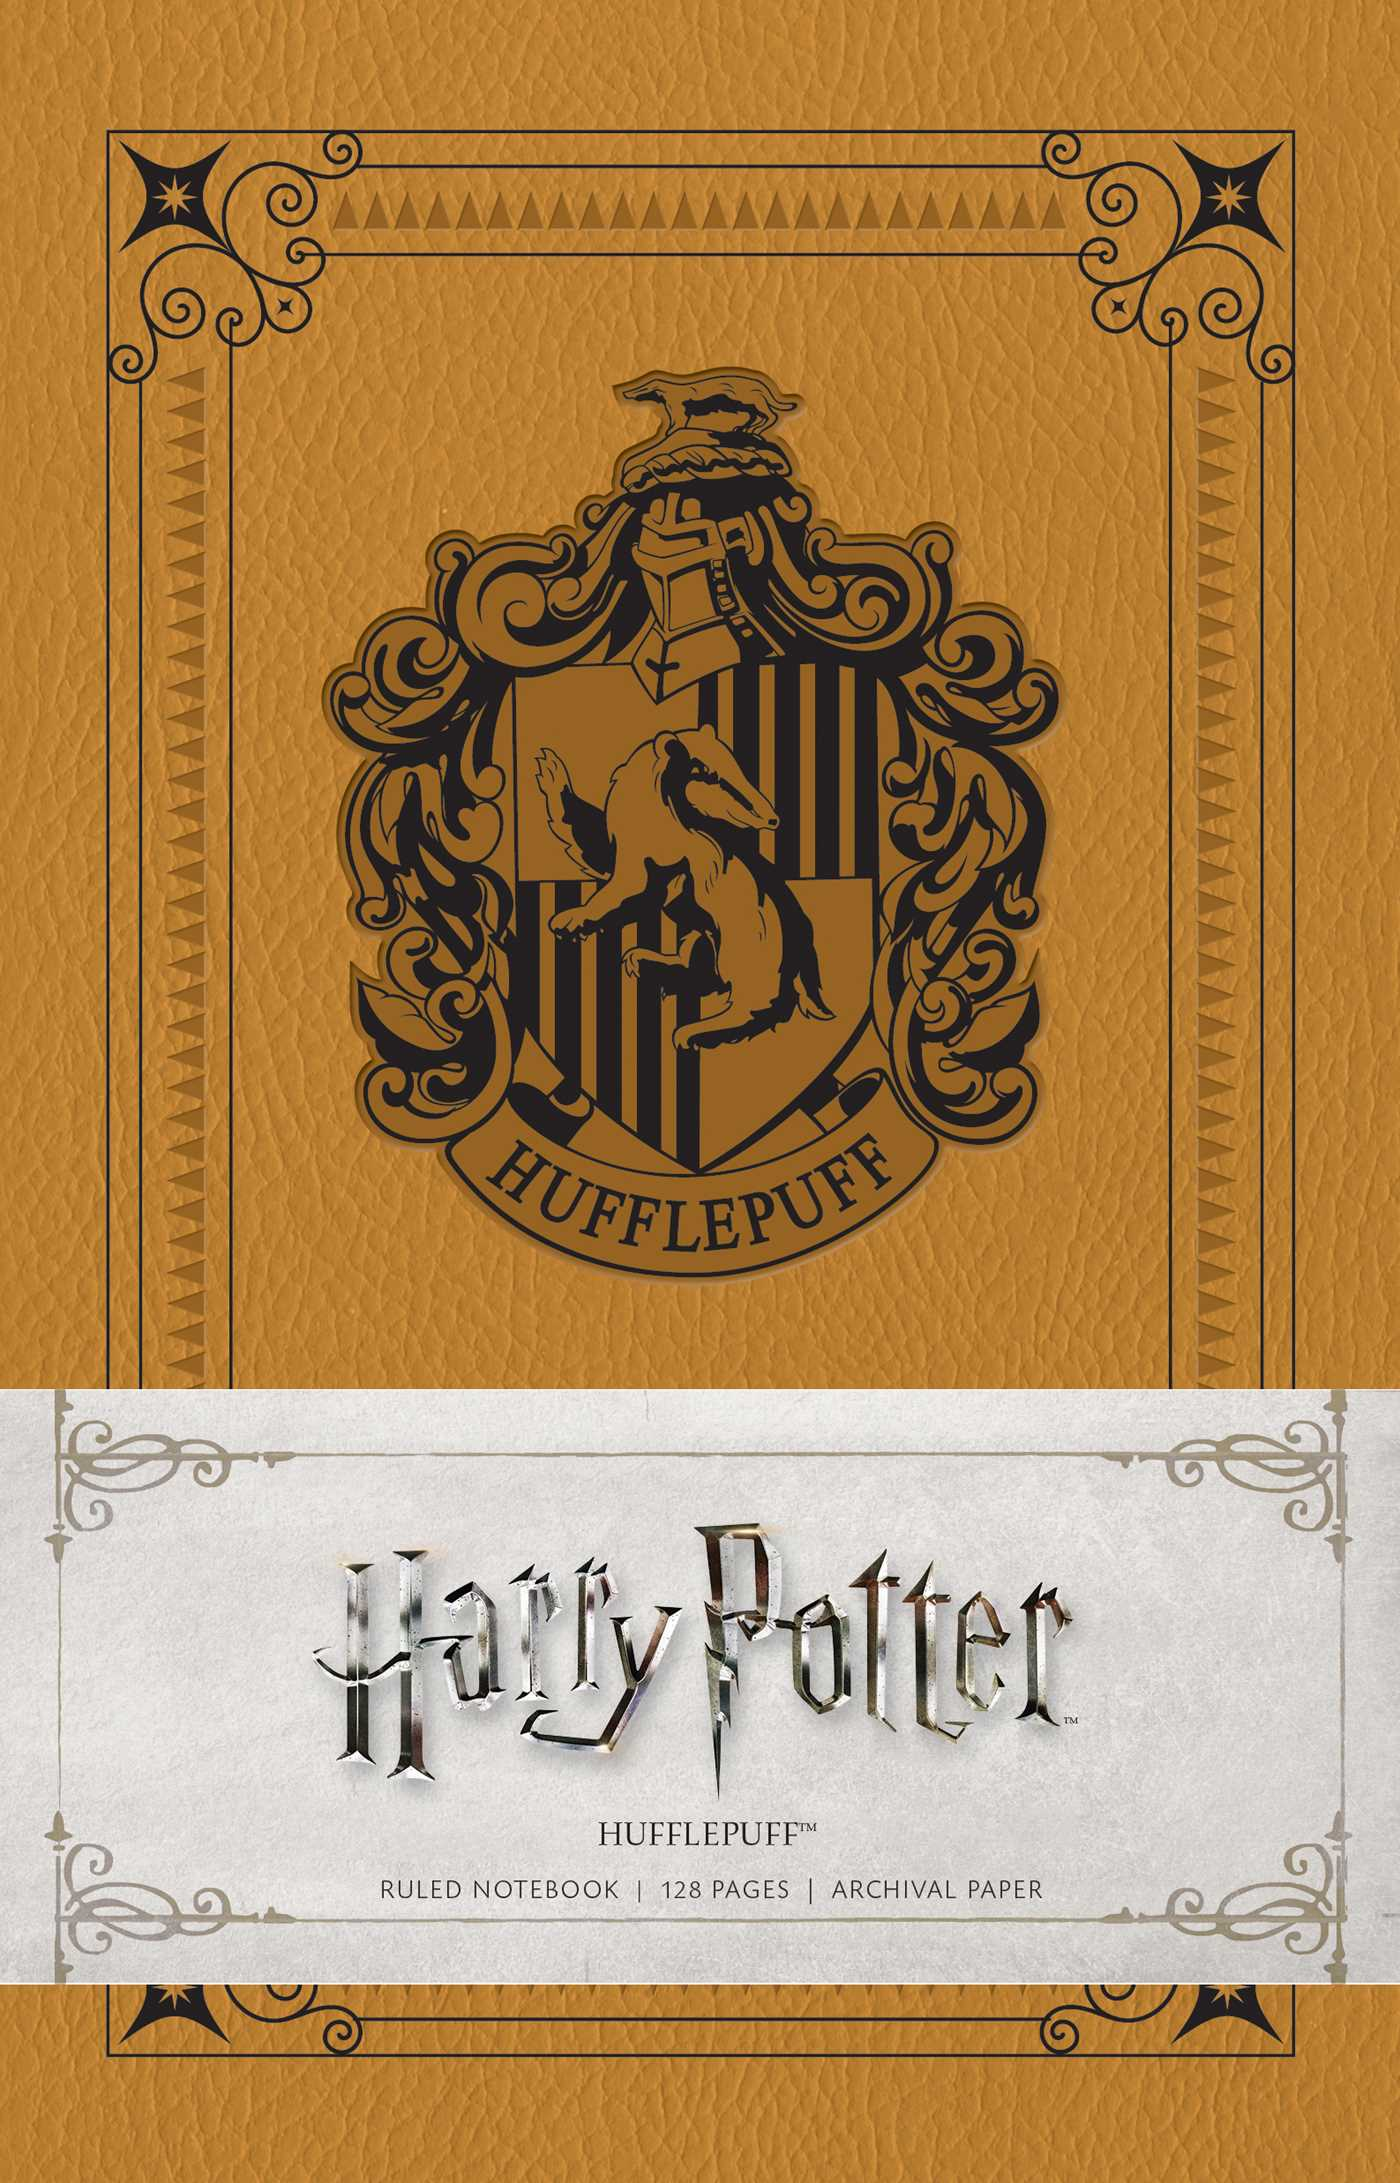 Harry Potter Book Lengths Pages : Harry potter hufflepuff ruled notebook book by insight